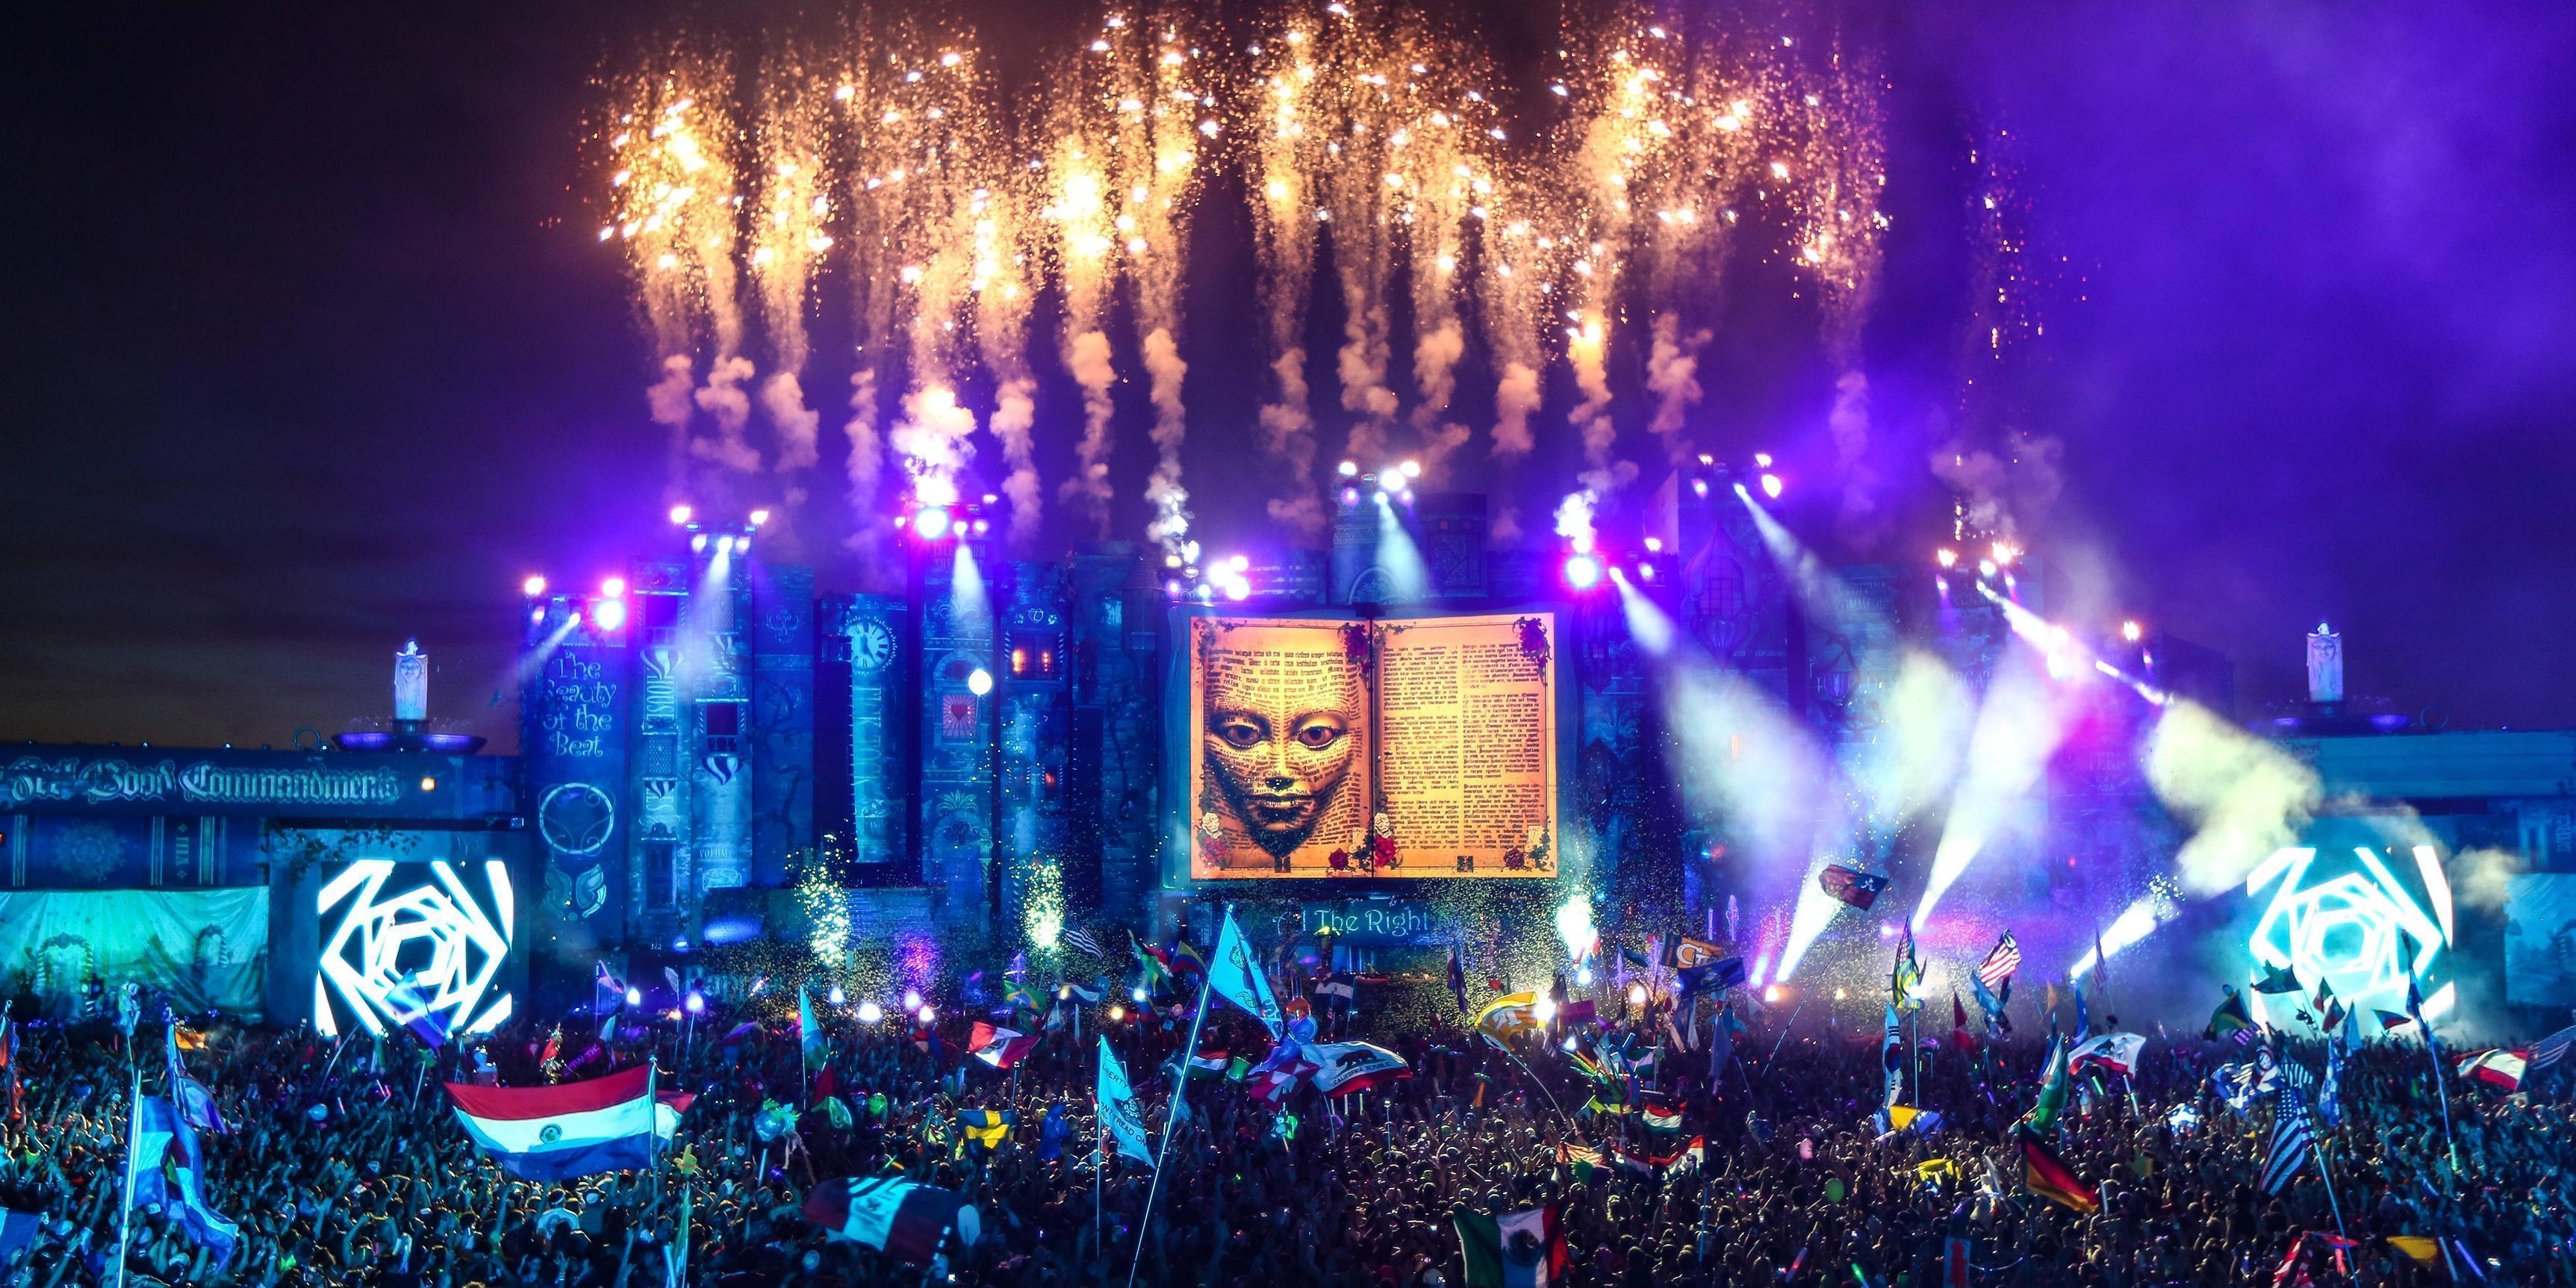 Tomorrowland 2017 Laser Show HD Wallpapers - Wallpaper Cave